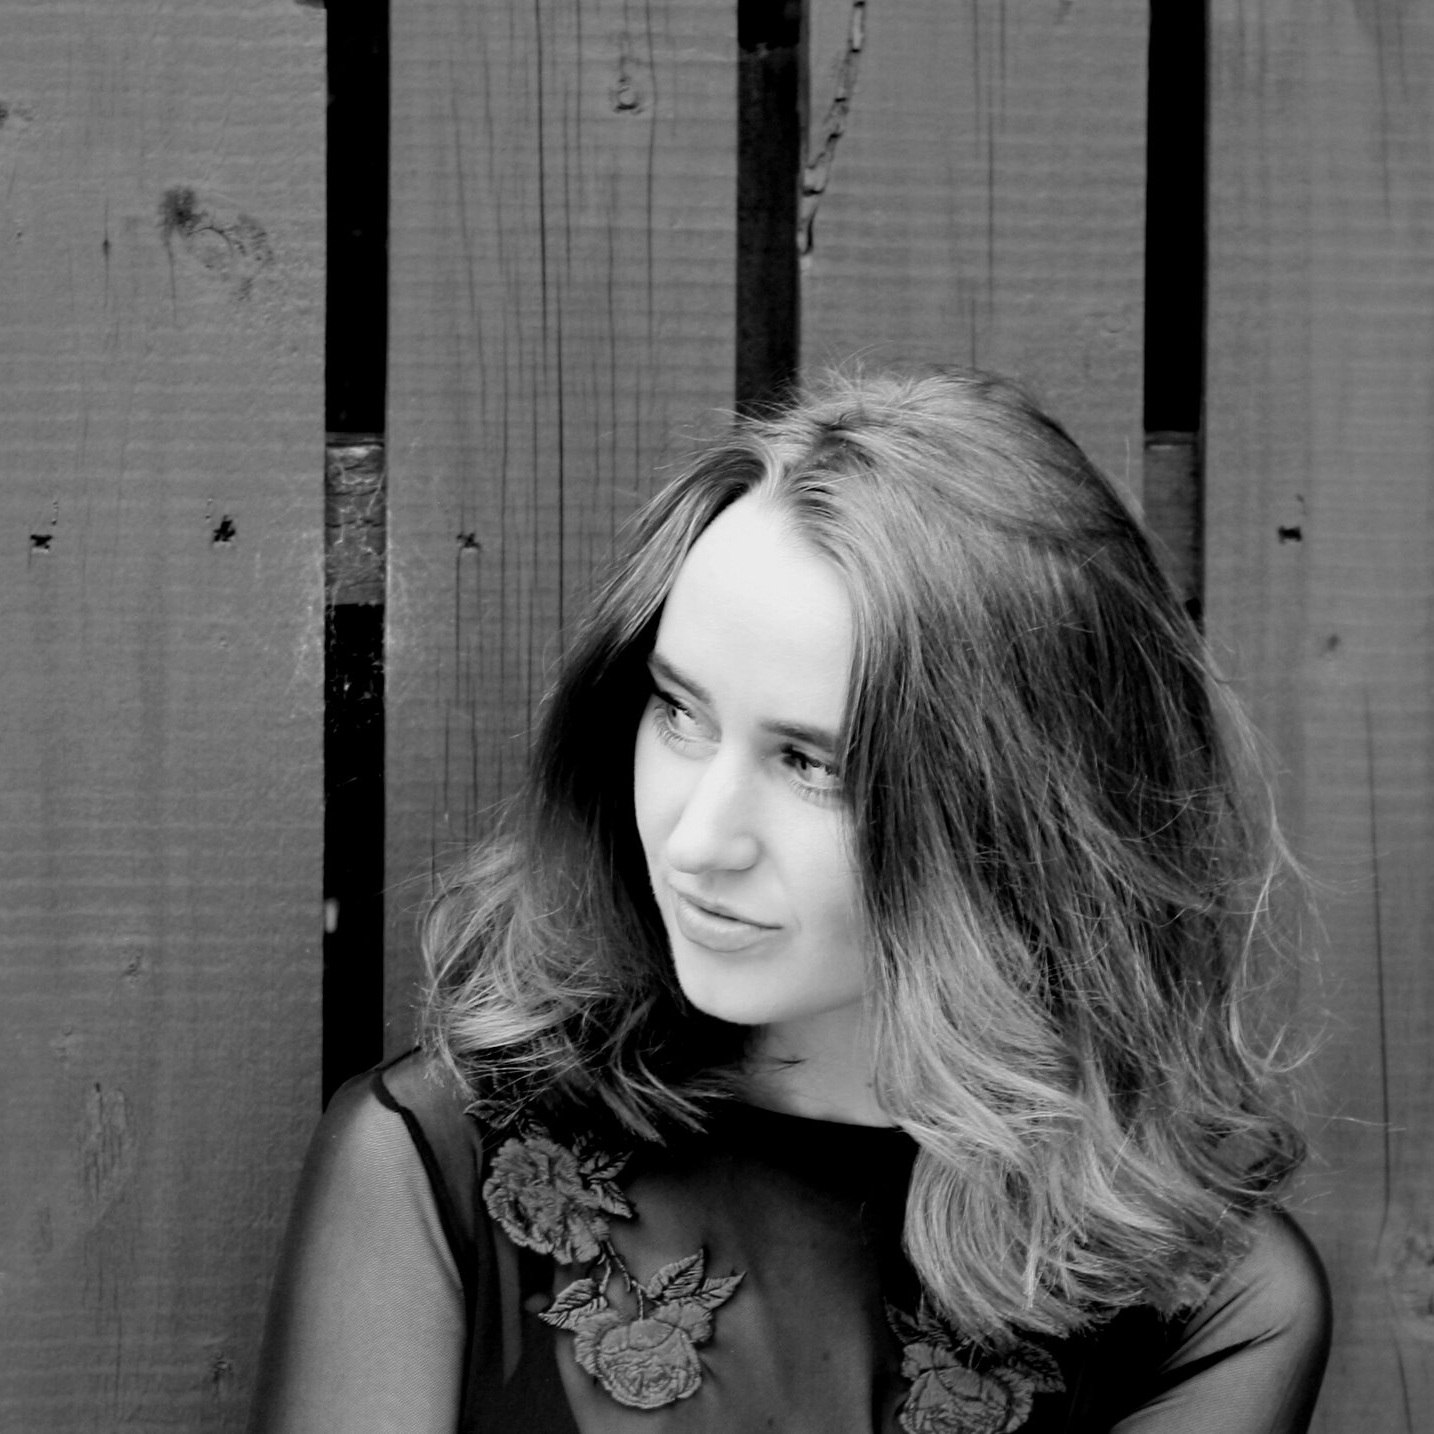 Susannah Dickey  is the author of two poetry pamphlets,  I had some very slight concerns  (2017)   and  genuine human values  (2018), both published by The Lifeboat, Belfast. Her poetry has appeared in  The White Review, Magma  and  Ambit , and she was shortlisted for  The White Review  short story prize in 2018. Her first novel,  Tennis Lessons,  will be published in 2020 by Doubleday.